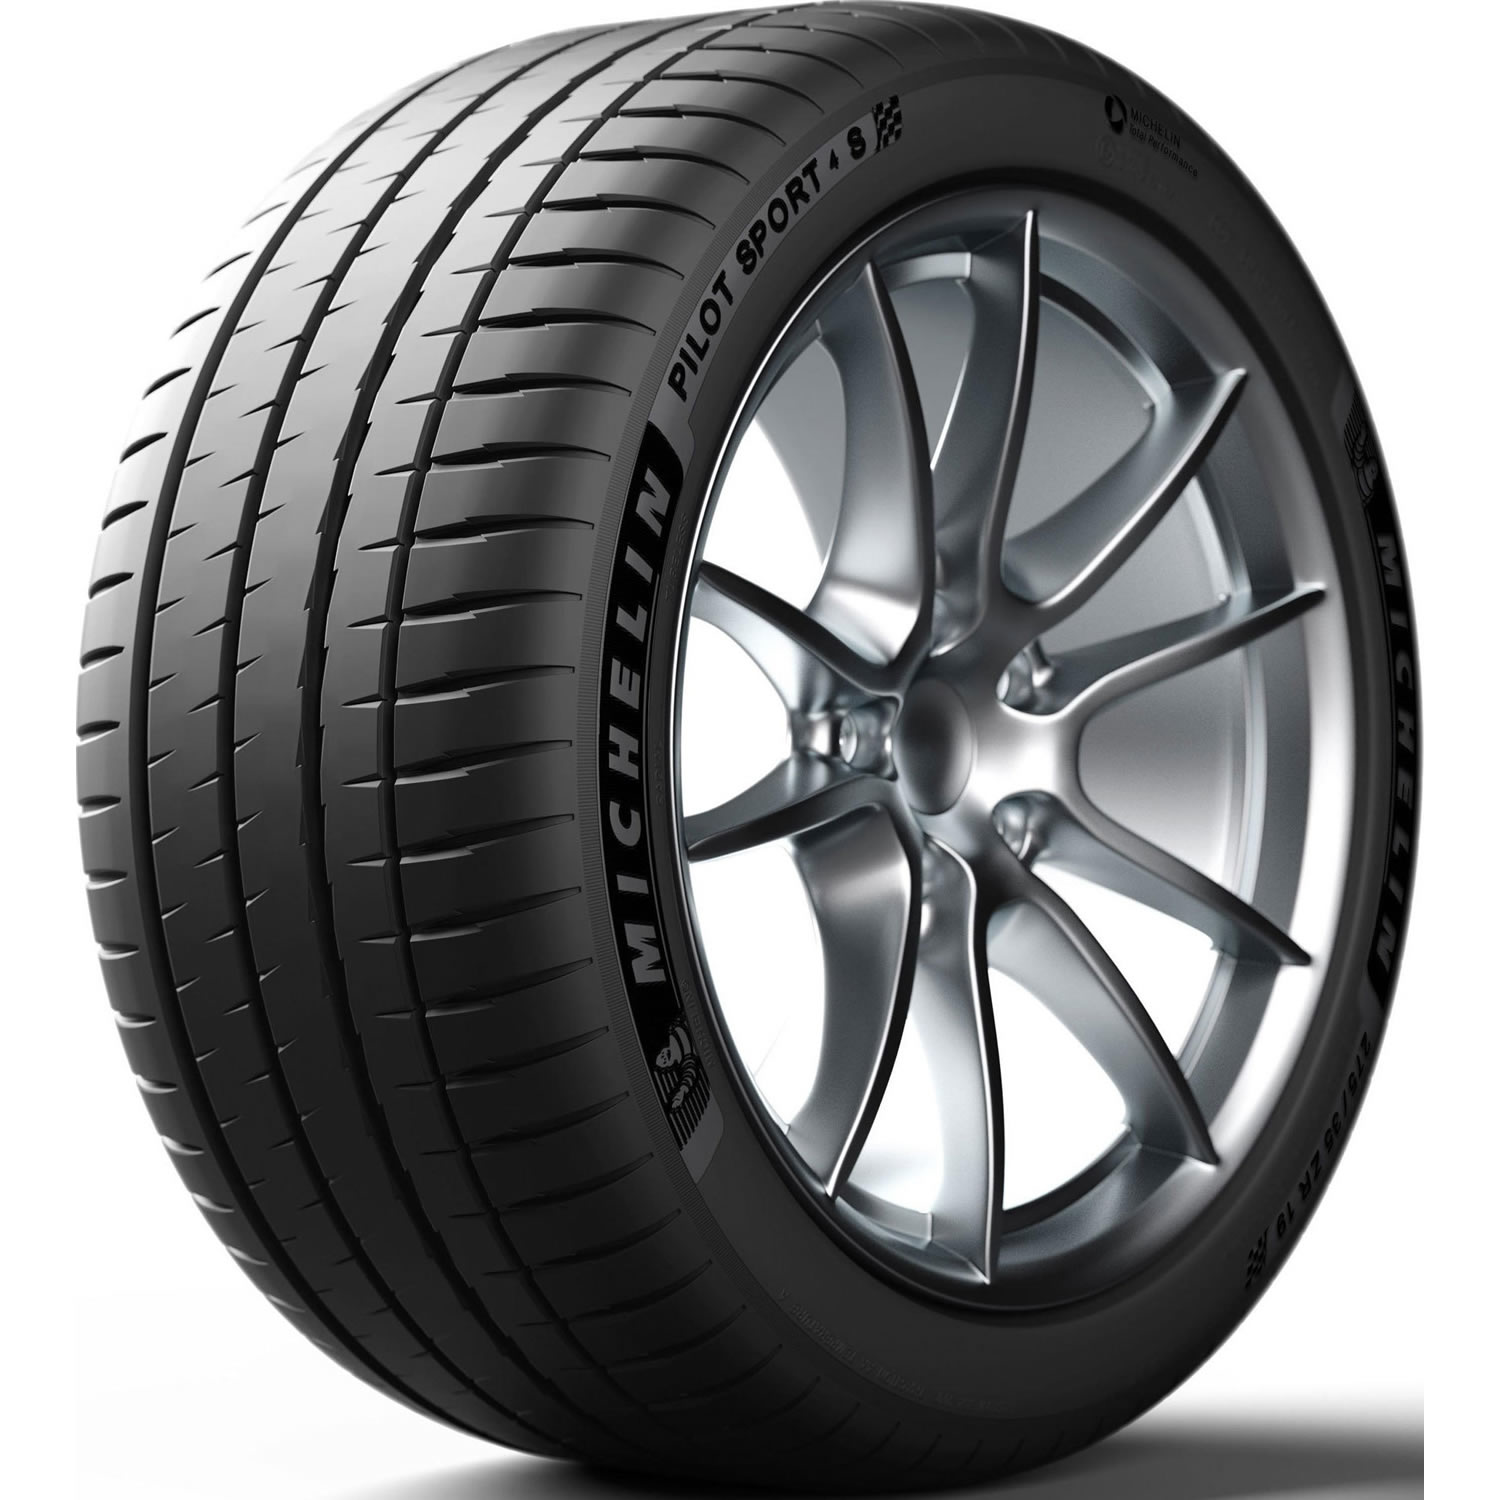 Michelin Pilot Sport 4 S 235/35ZR19